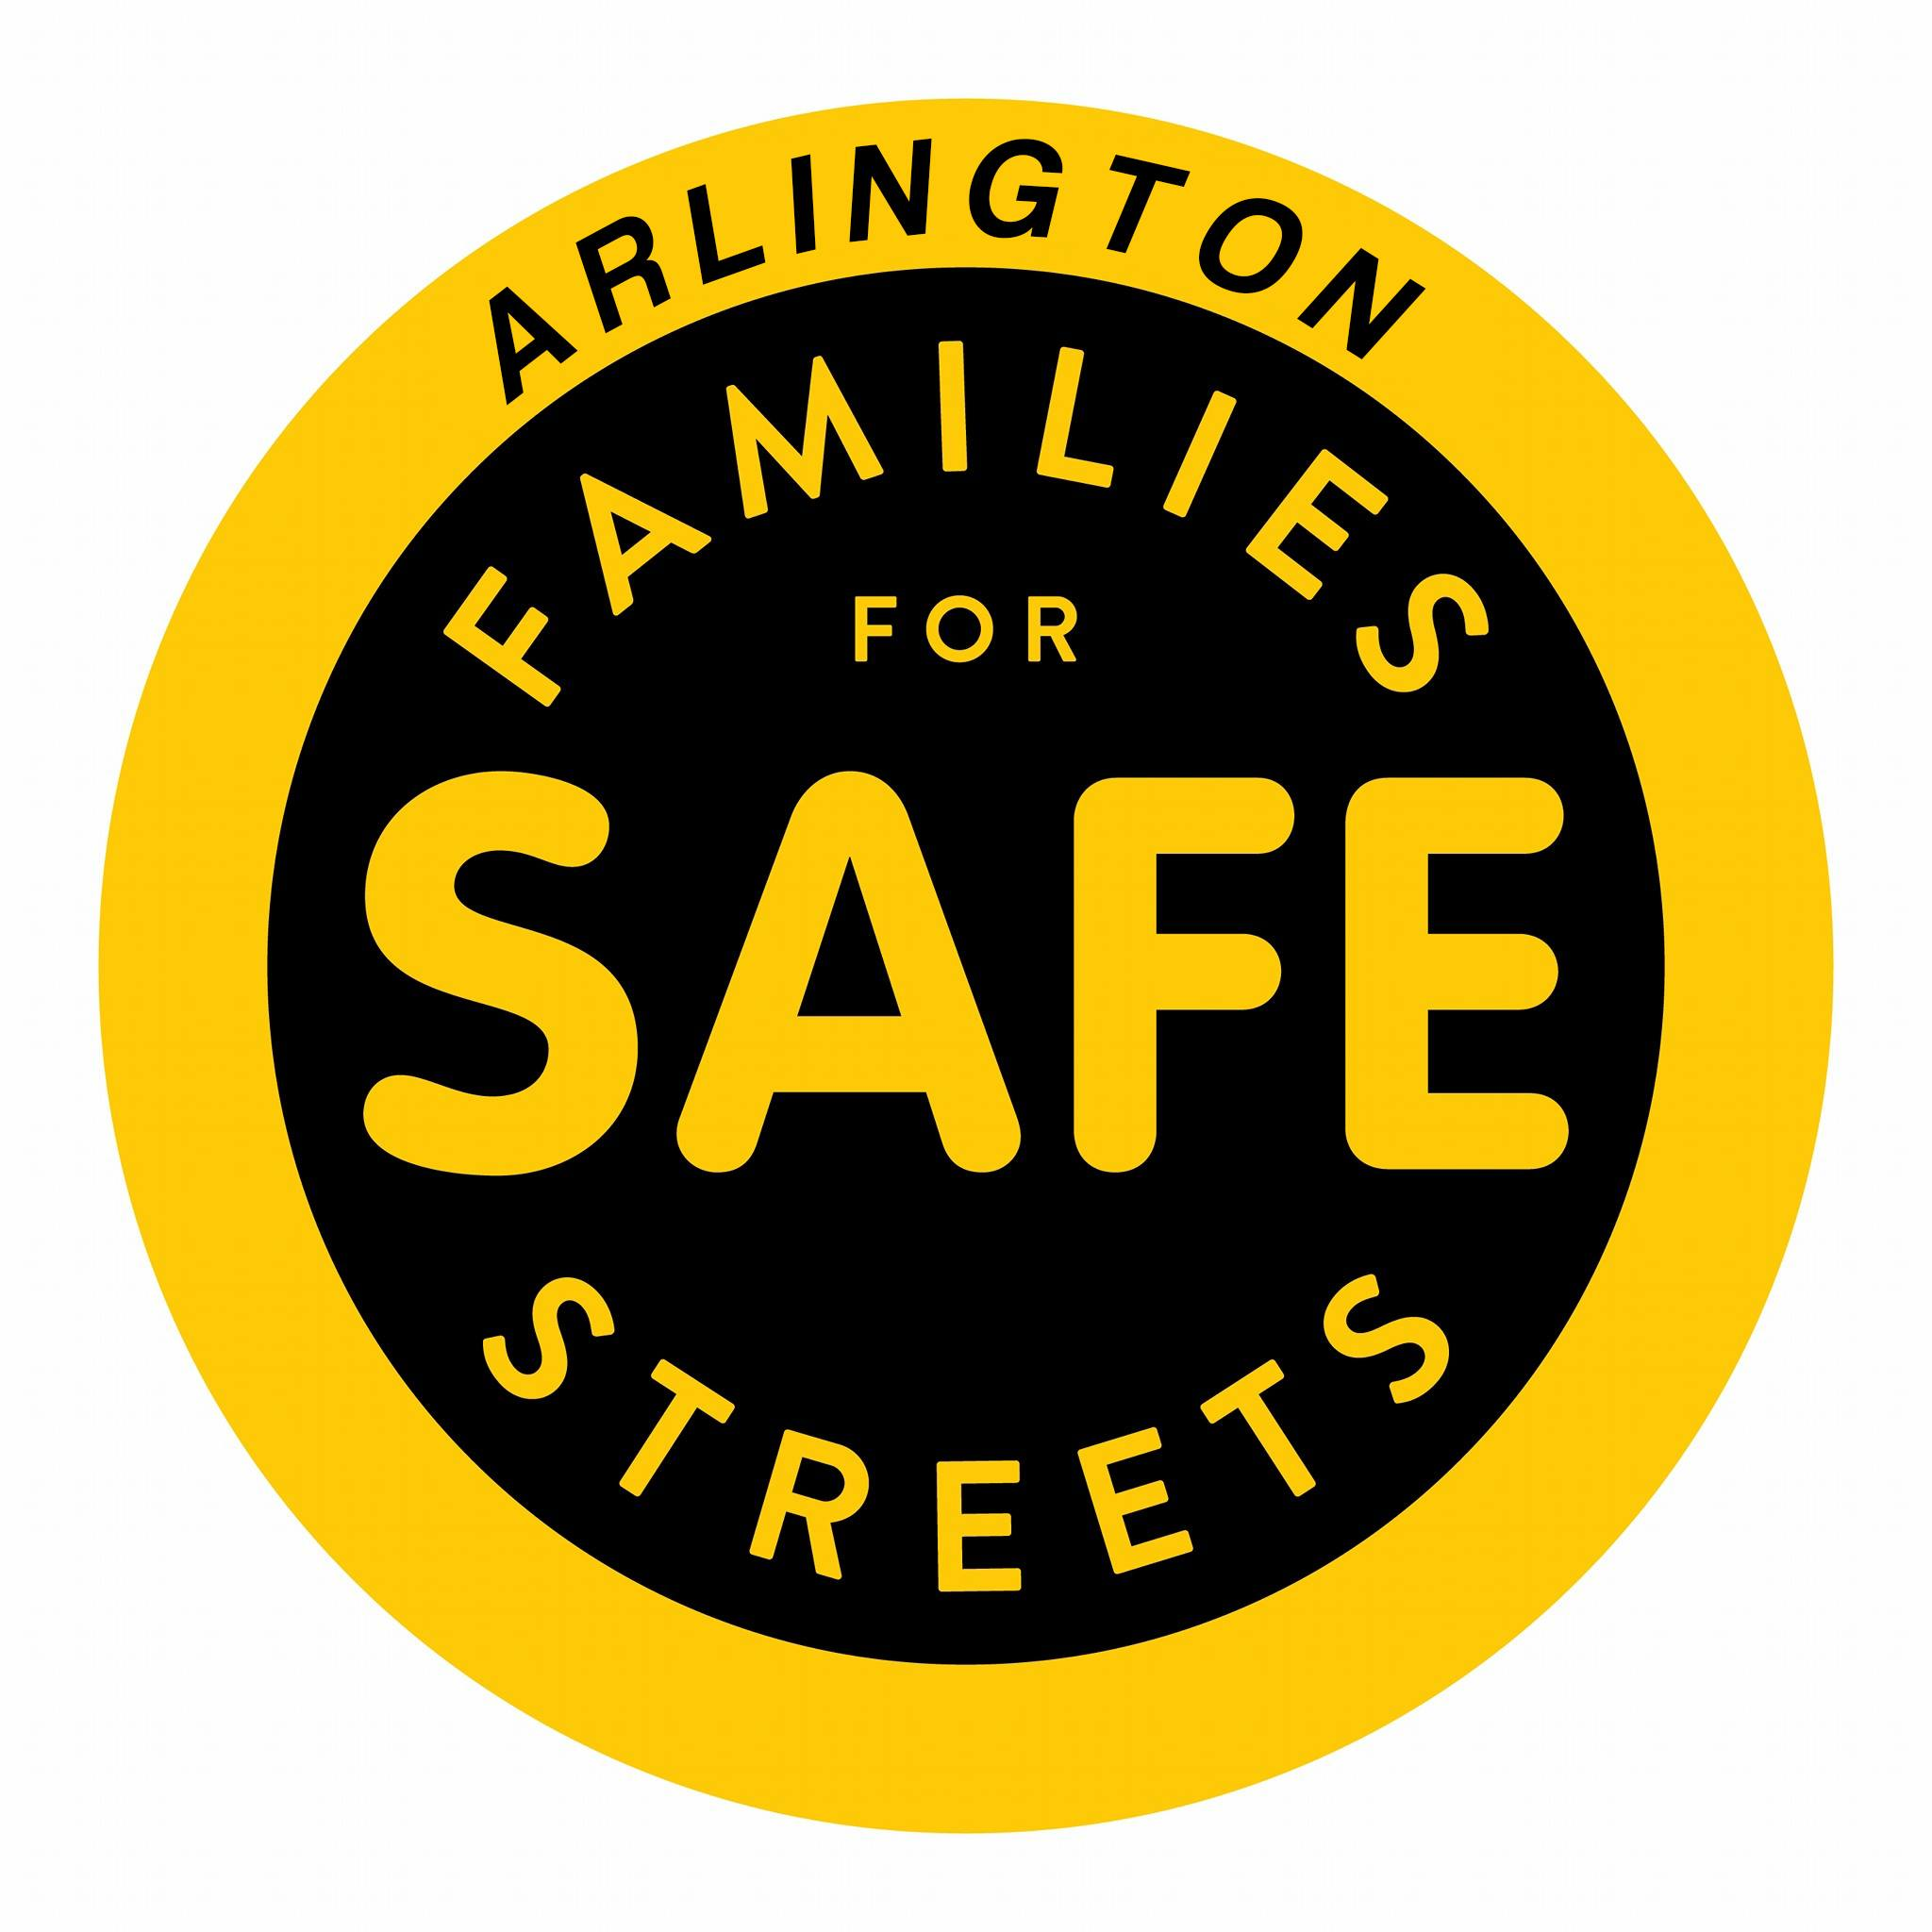 Arlington Families for Safe Streets